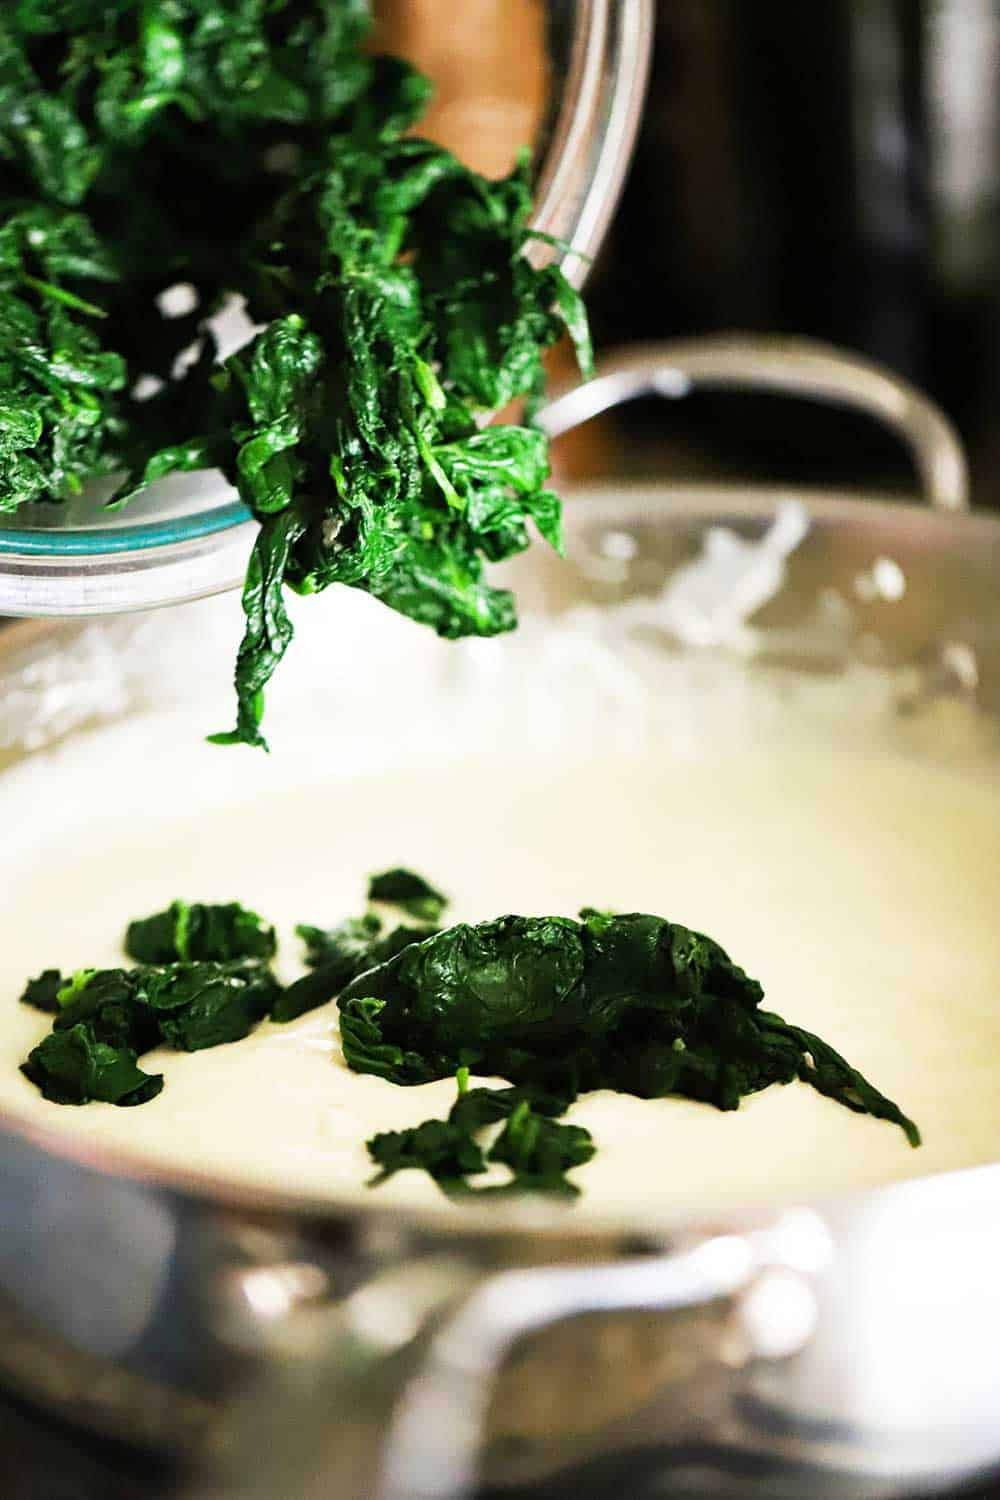 Blanched spinach leaves being dropped from a bowl into a skillet fillet with bechamel sauce.